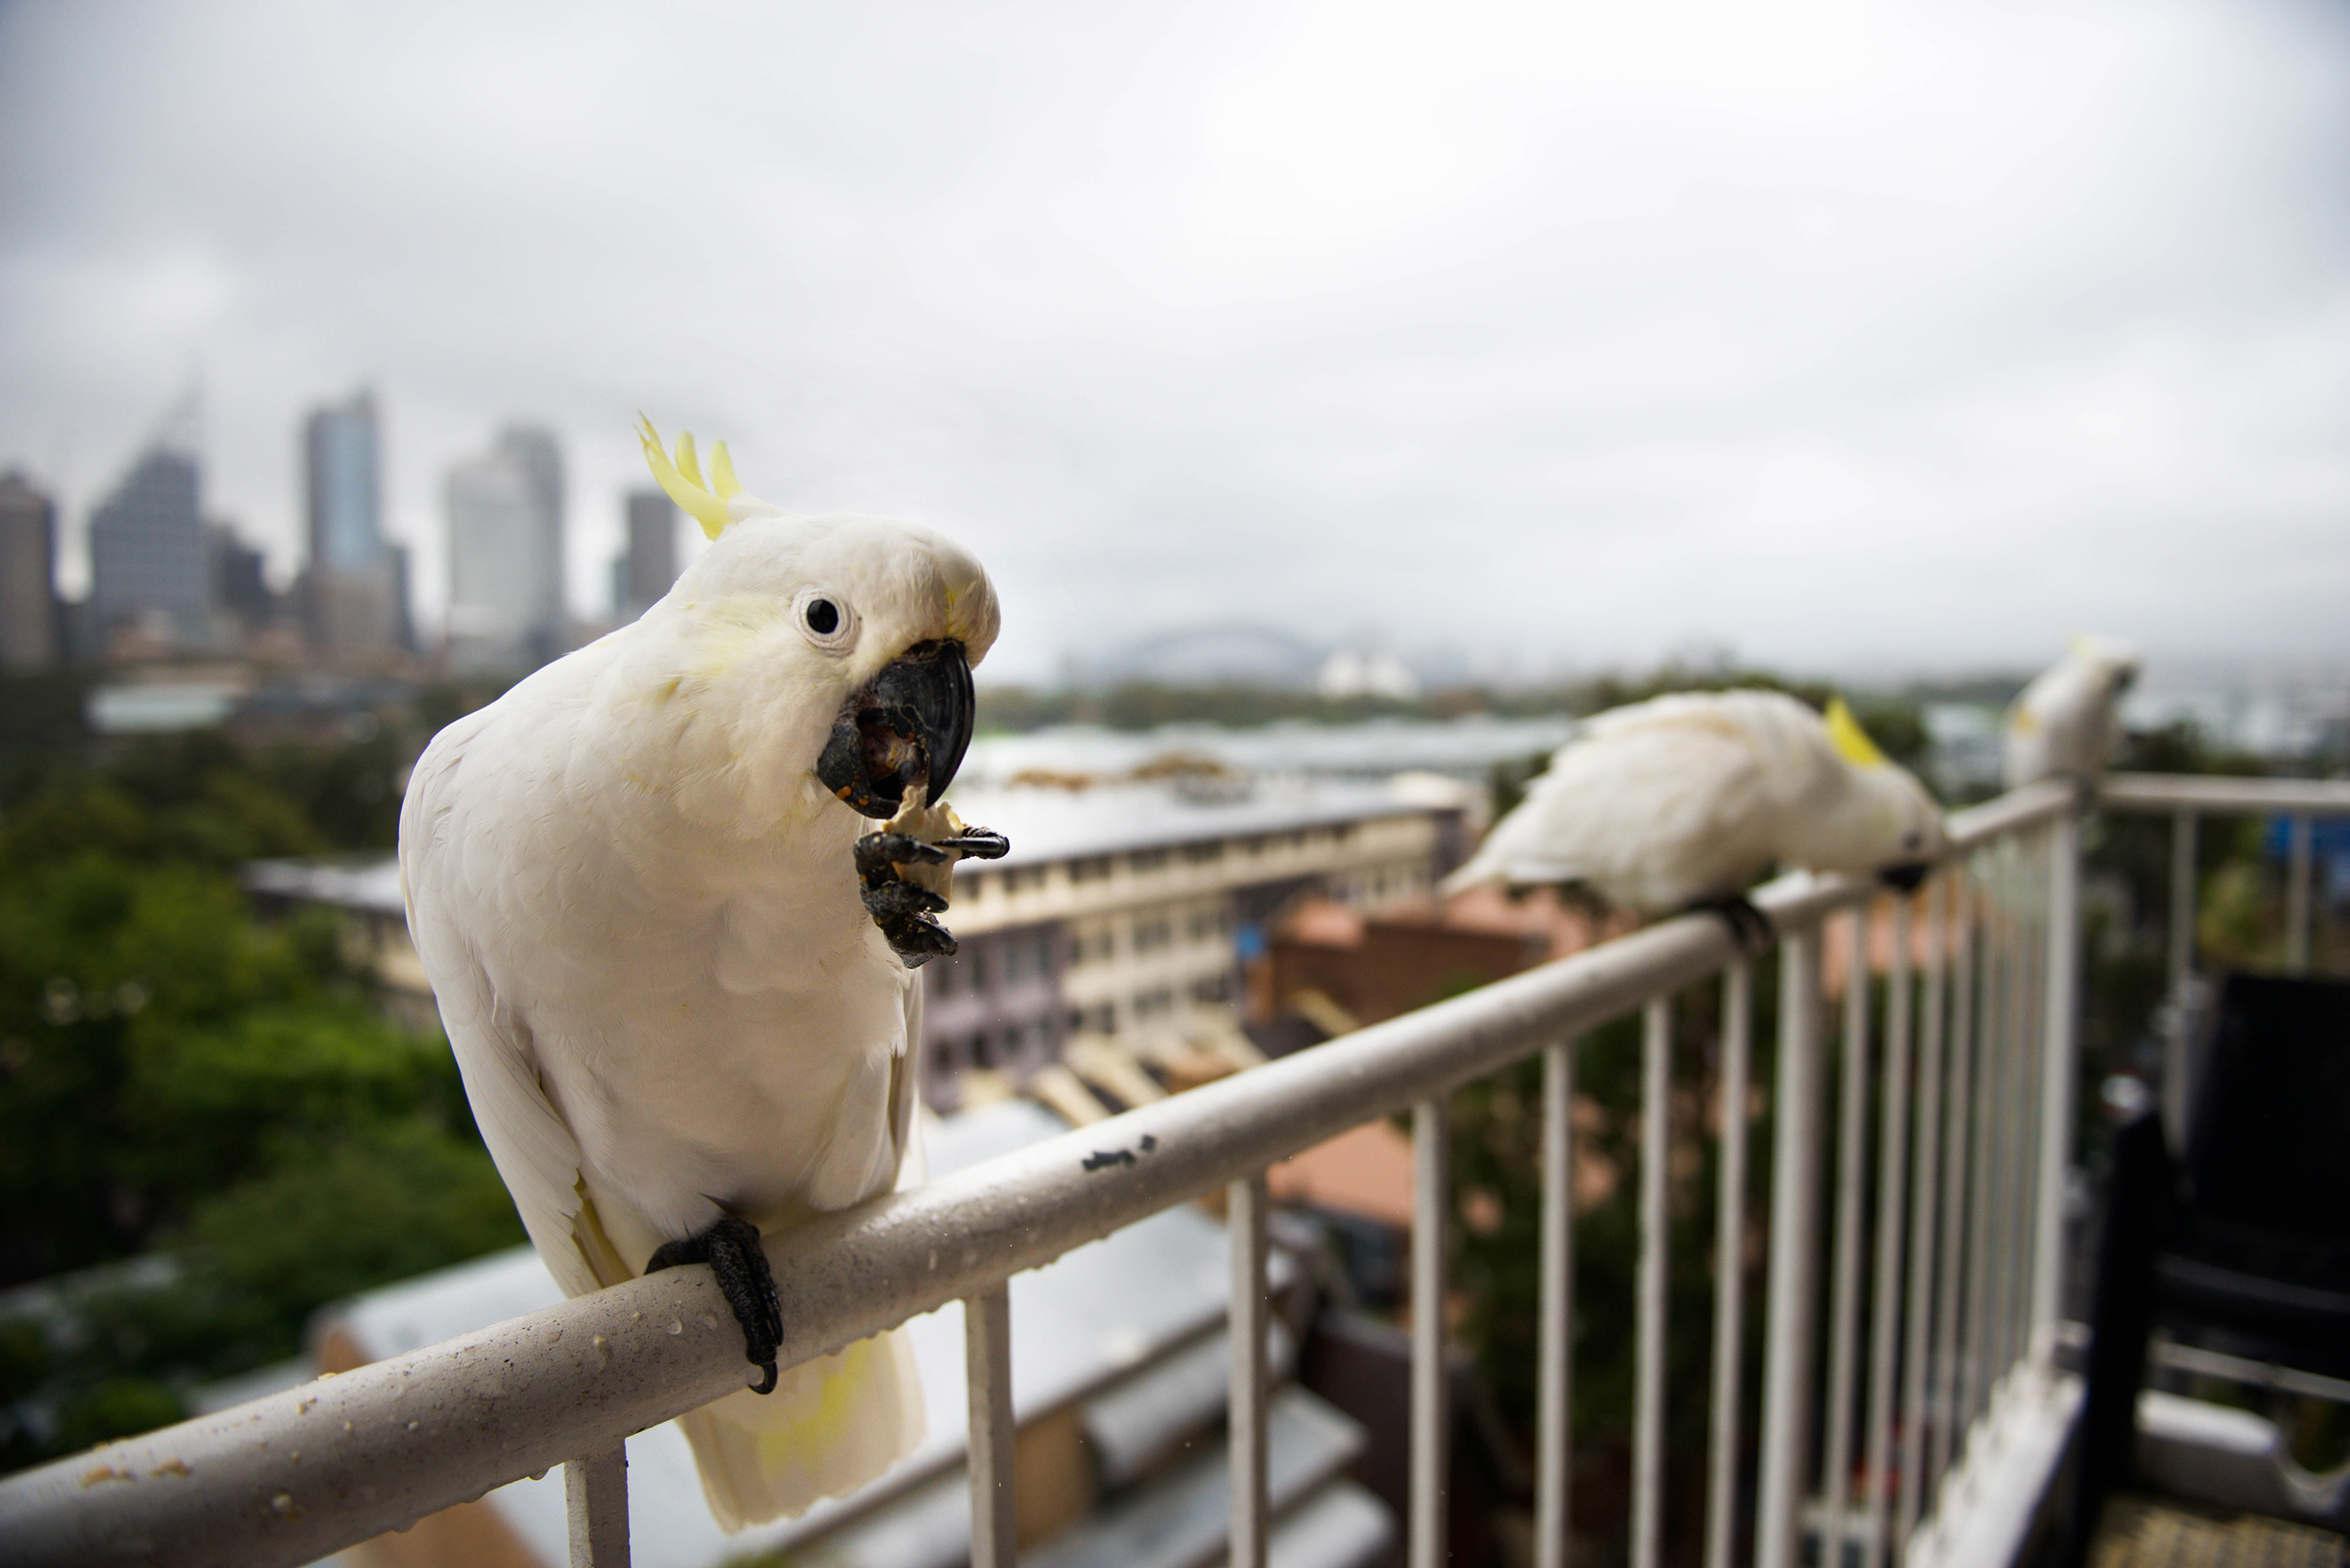 COCKATOO-LE TWO Sydney, Australia